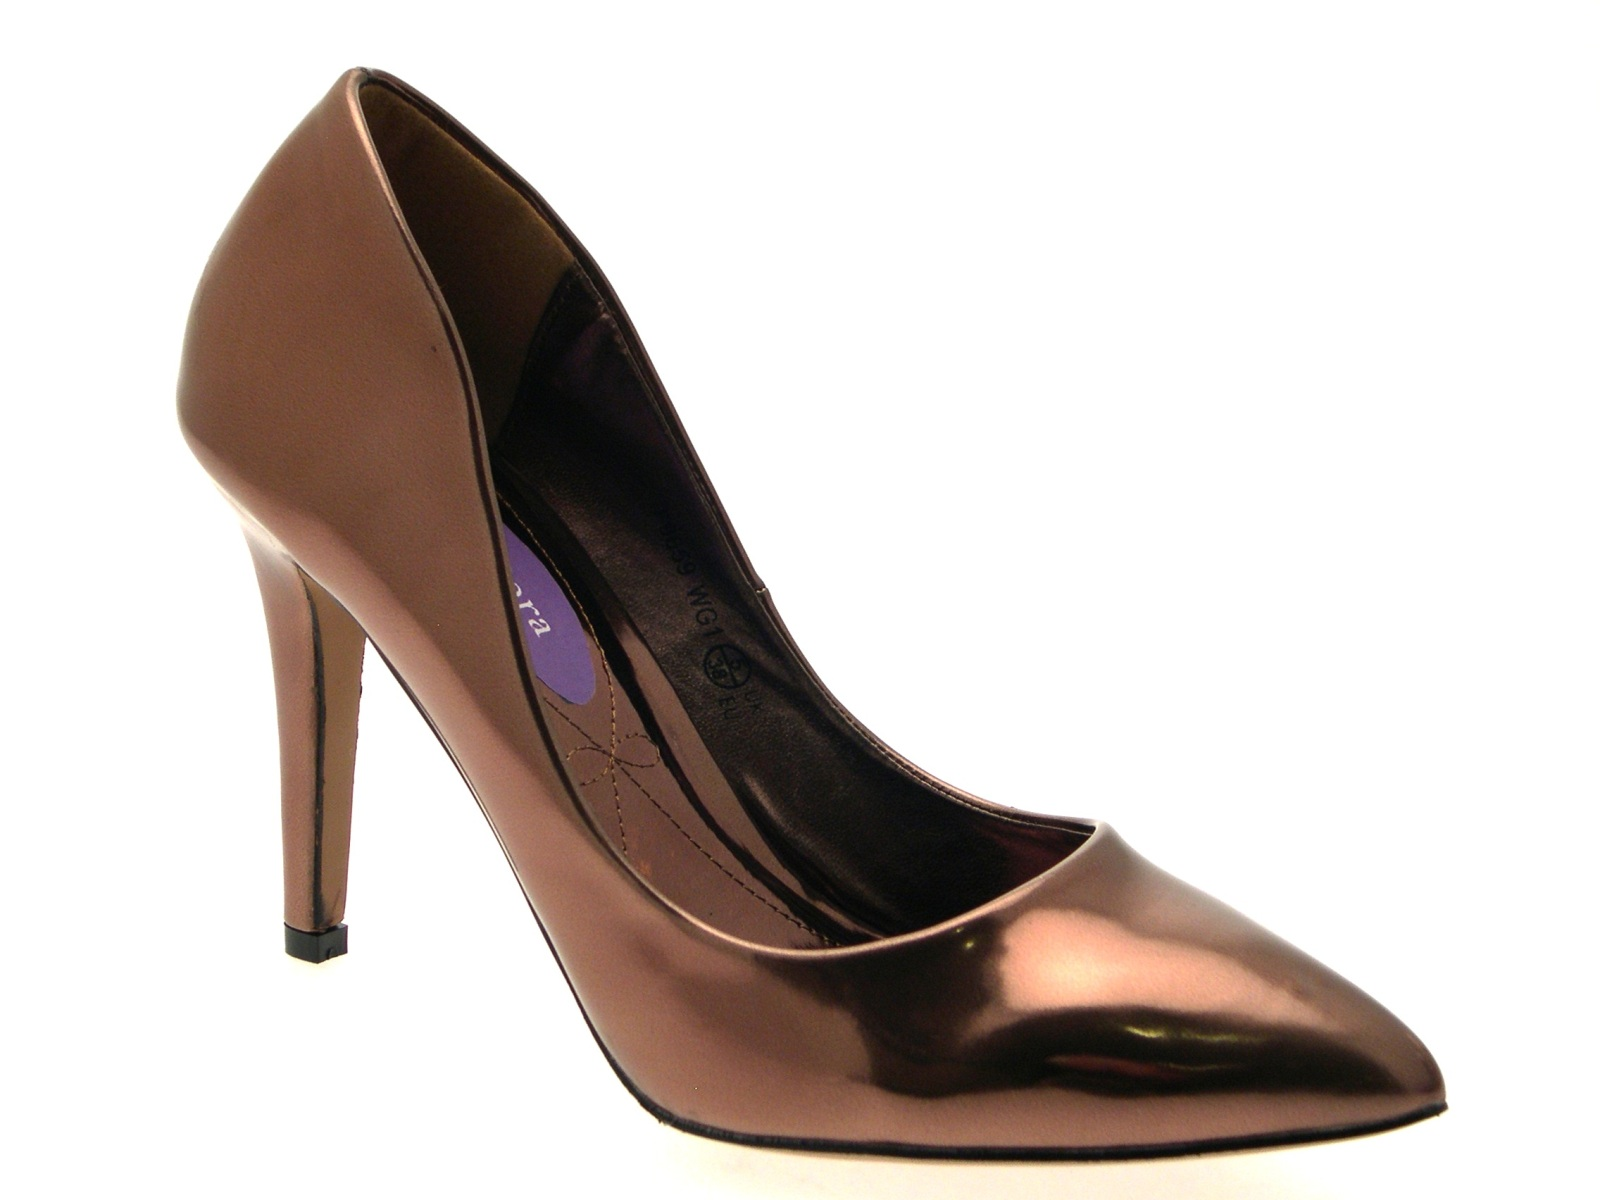 Womens-Metallic-Pointed-Toe-Court-Stiletto-High-Heels-Ladies-Work-Office-Shoes thumbnail 4